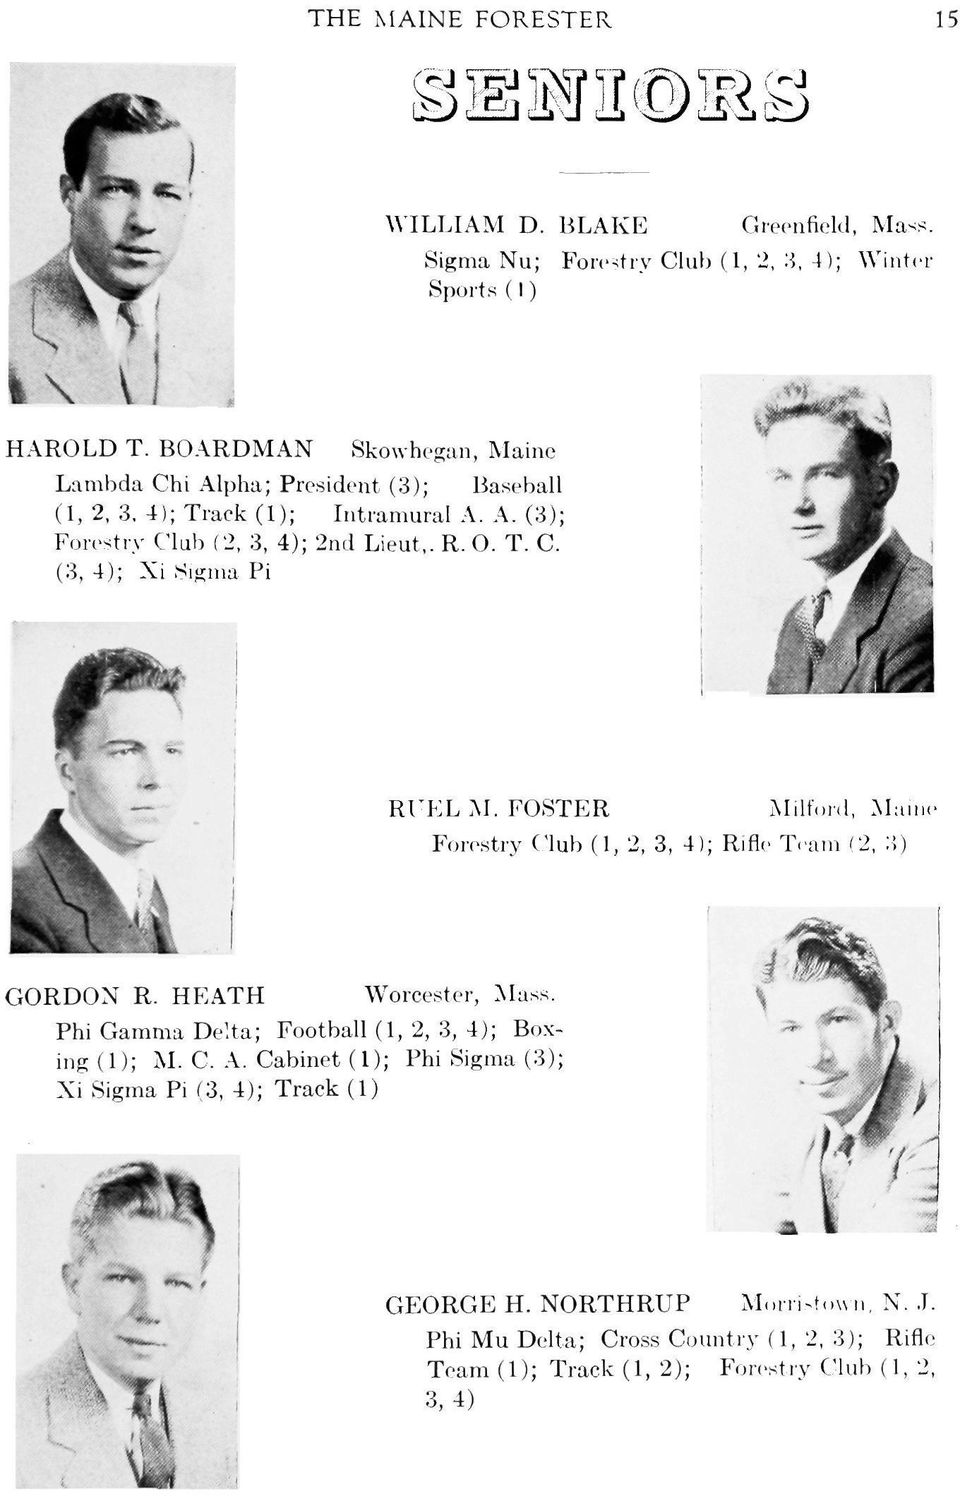 FOSTER Milford, Maine Forestry Club (1, 2, 3, 4); Rifle Team (2, 3) GORDON R. HEATH Worcester, Mass. Phi Gamma Delta; Football (1, 2, 3, 4); Boxing (1); M. C. A.